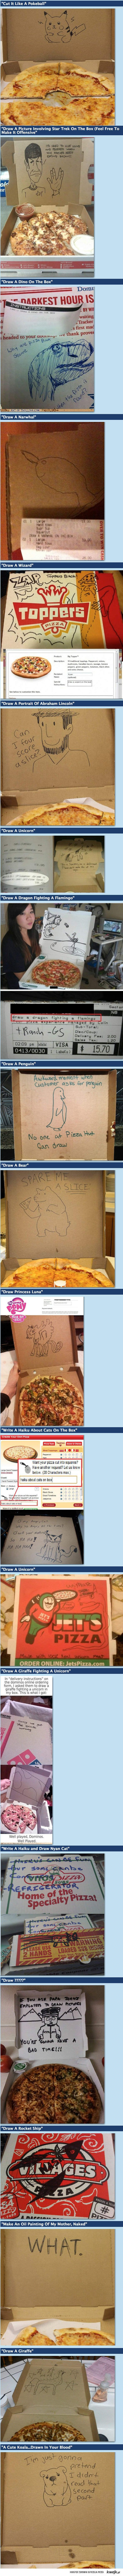 any special requests (ordering online) yesss draw me ____ on my pizza box :)